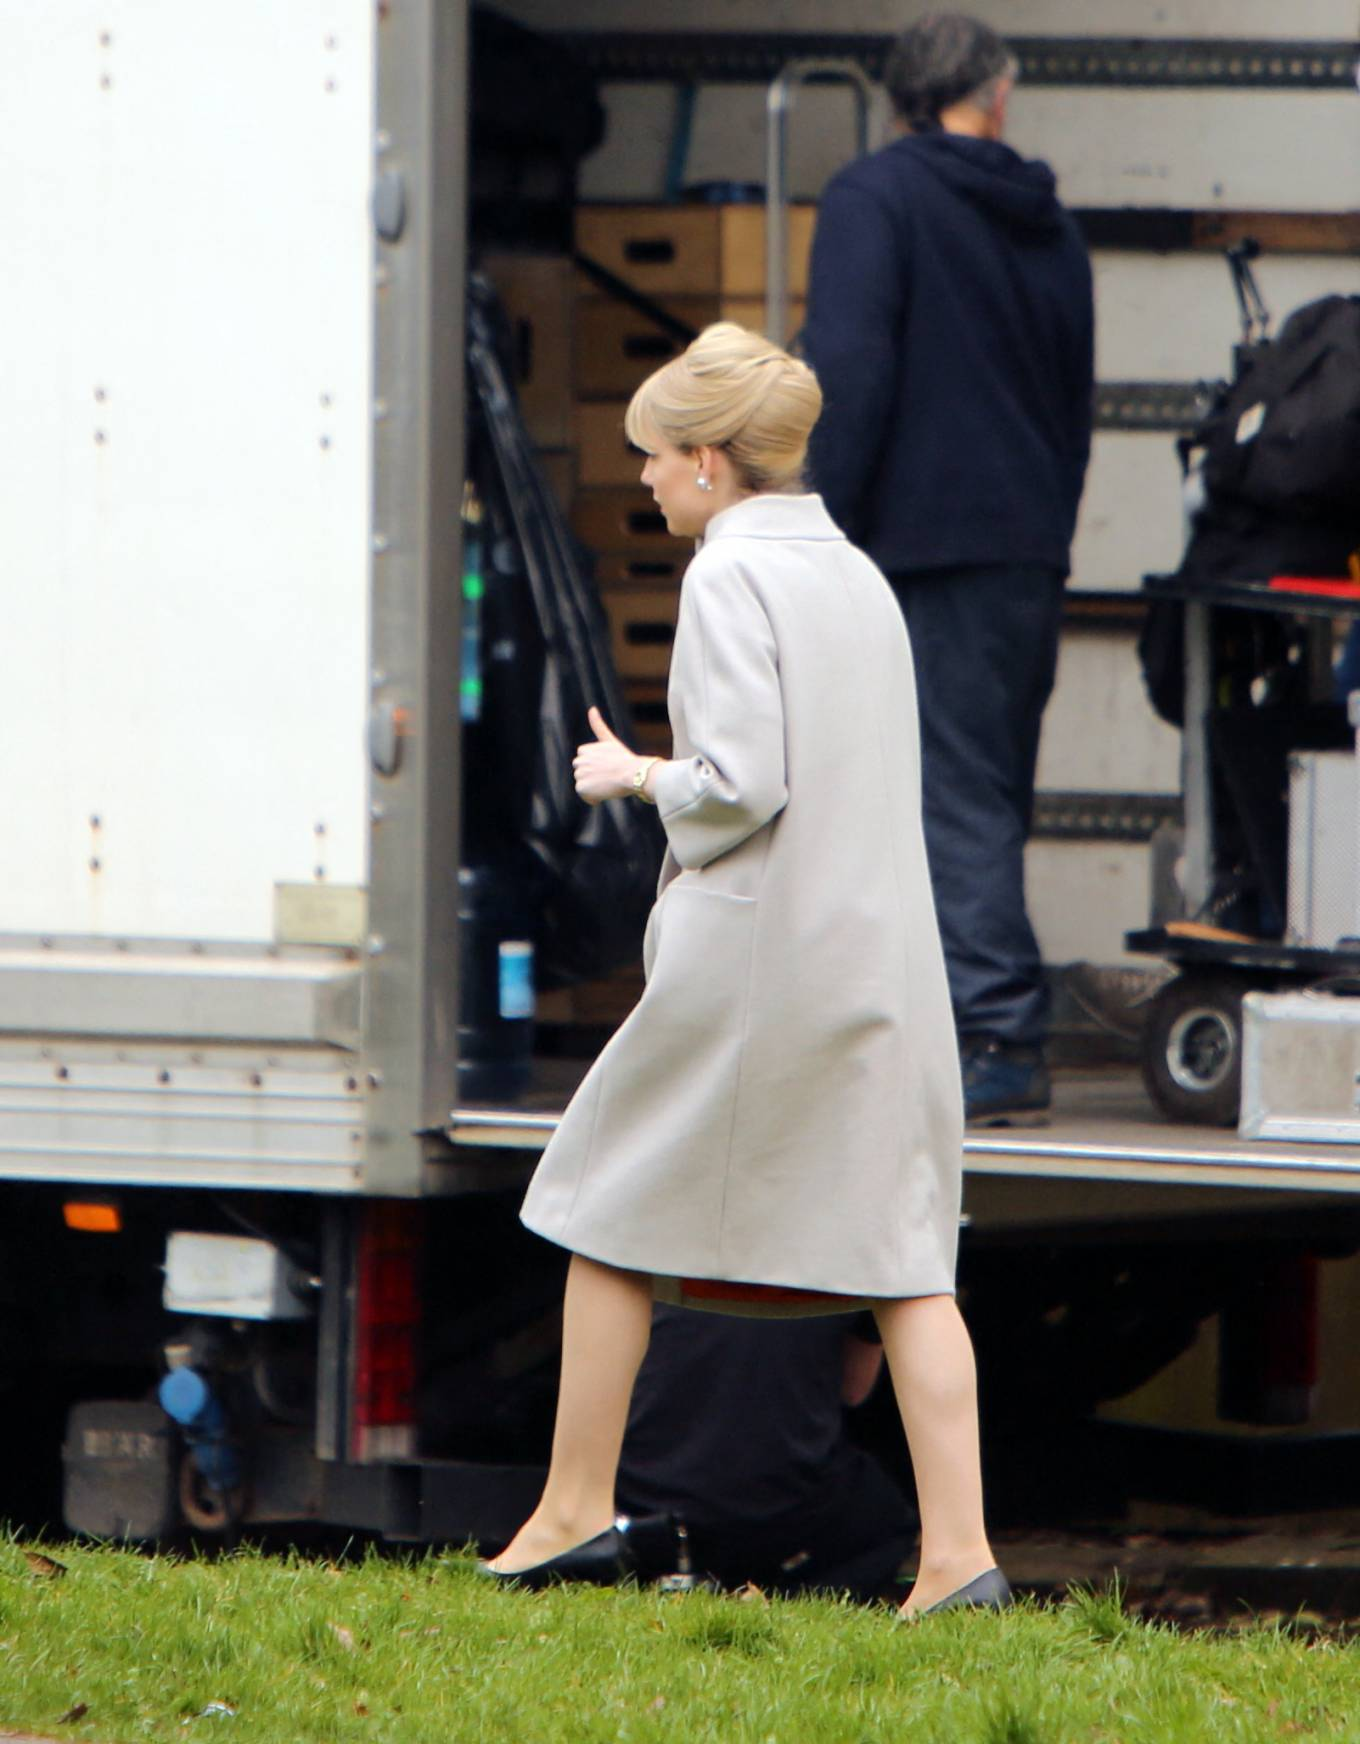 Lucy Boynton - filming of the ITV series The Ipcress File in Liverpool